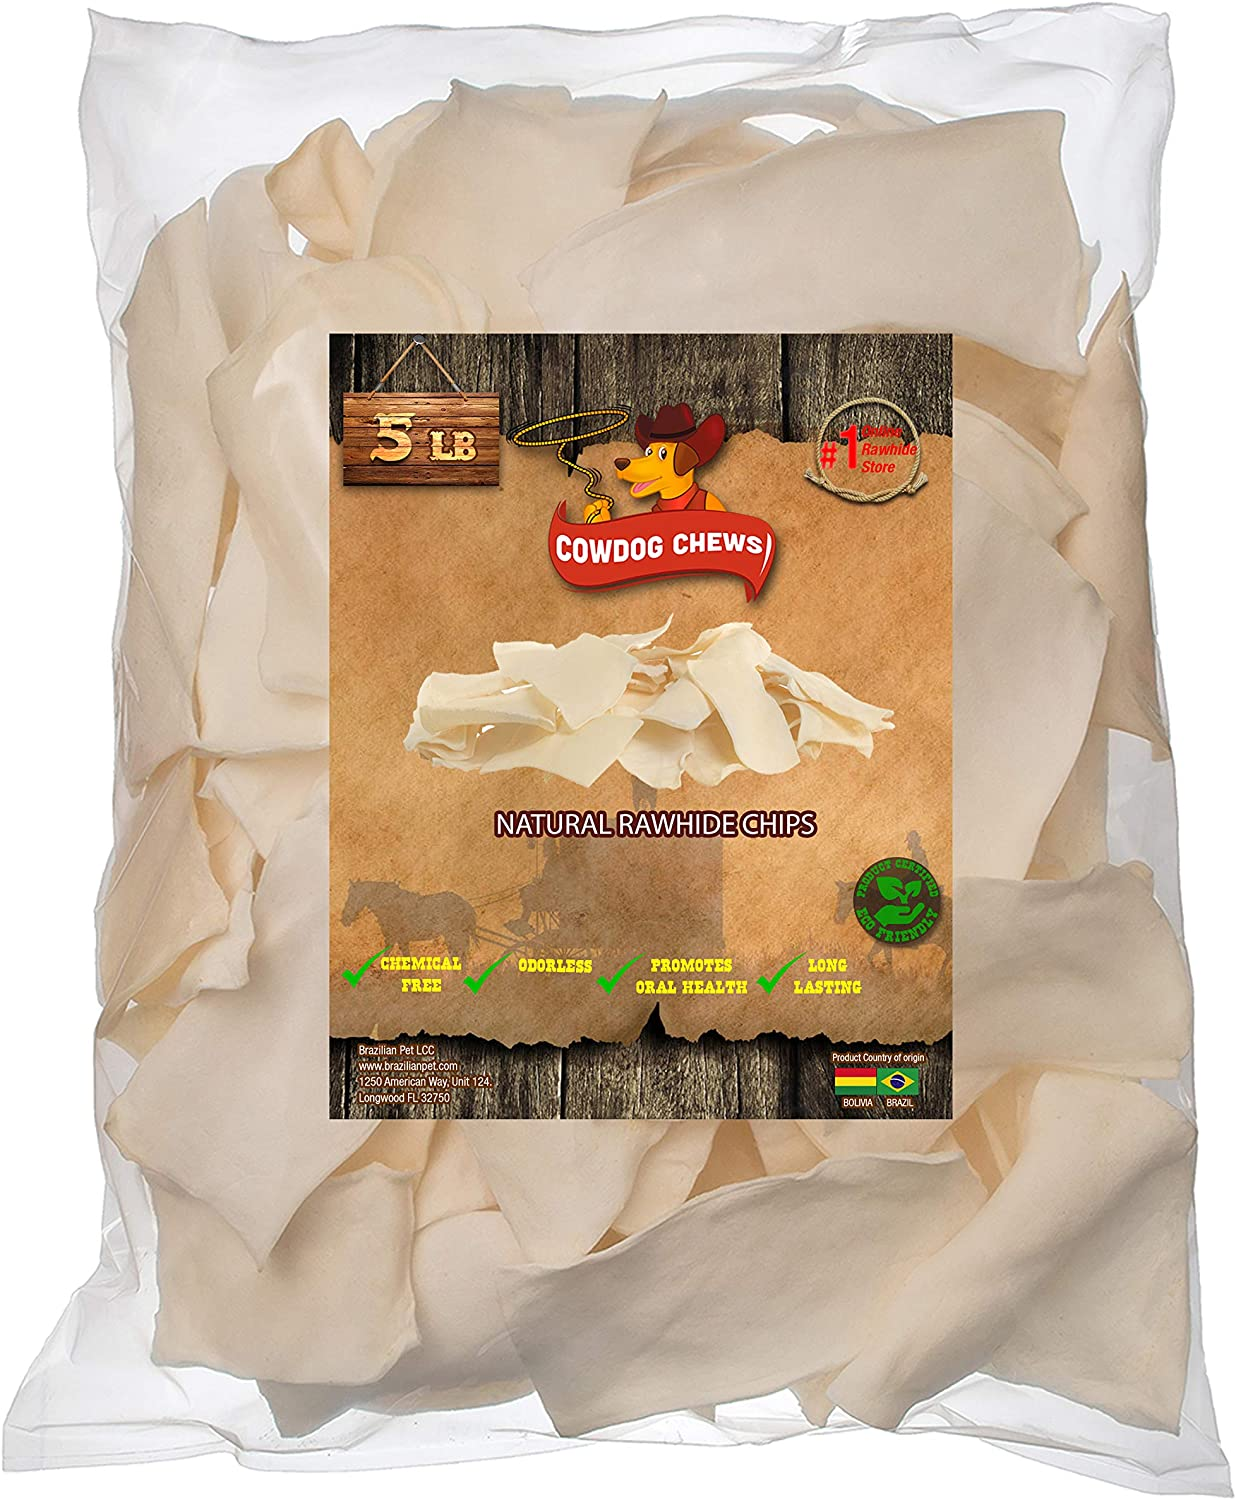 Cowdog Chews Natural Rawhide Chips. Premium Long-Lasting Dog Treats with Thick Cut Beef Hides, Processed Without Additives or Chemicals